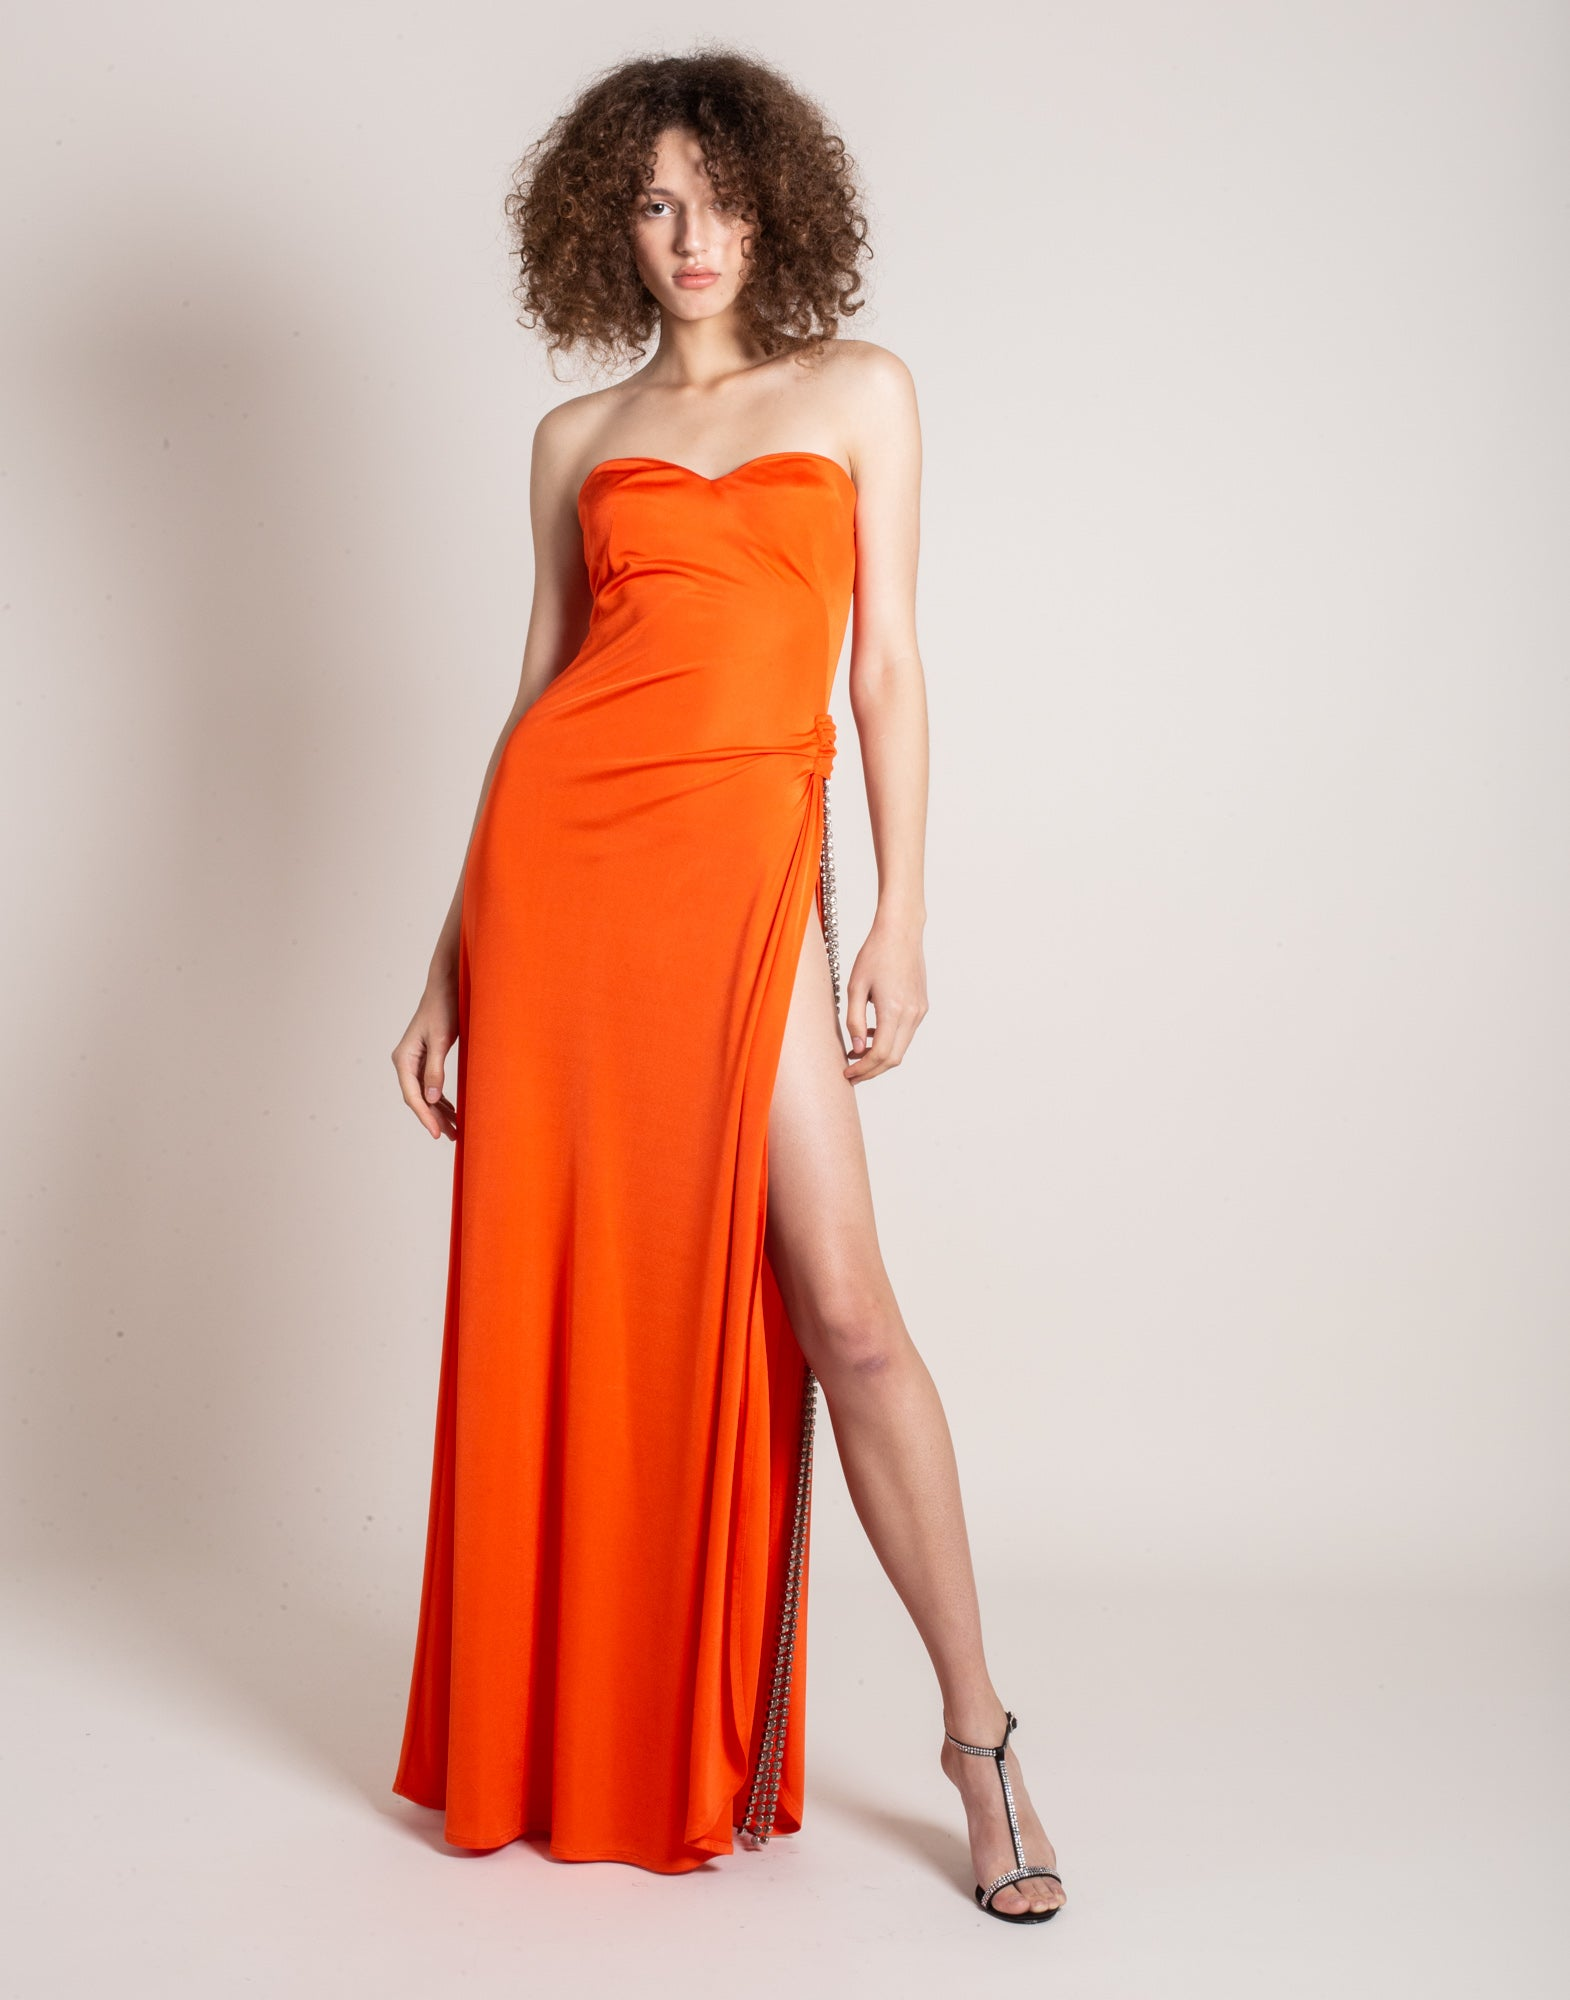 Orange strapless rhinestone-embellished gown - NEW IN